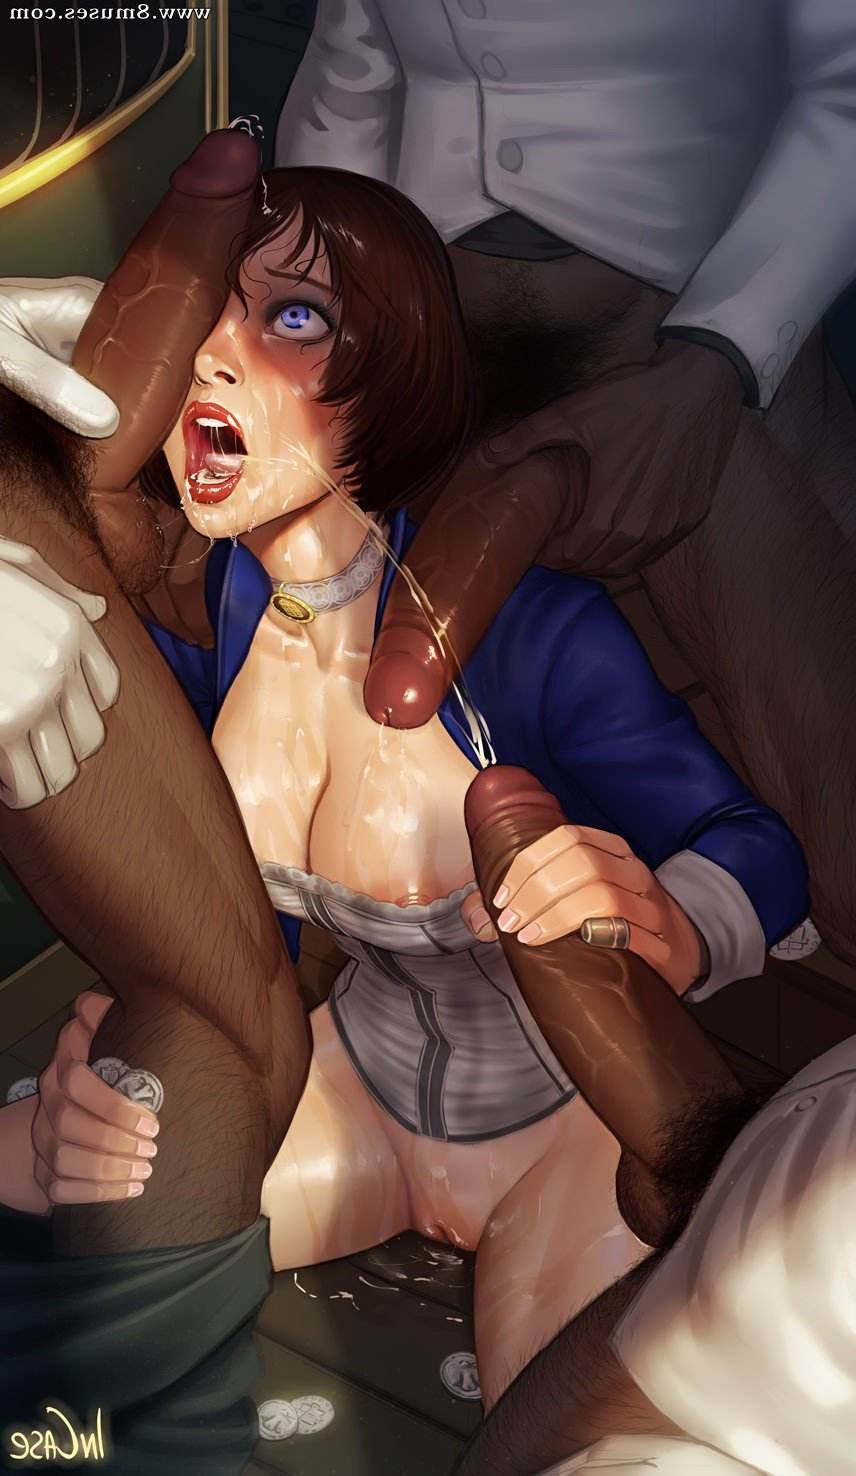 Incase-Comics/Artwork Artwork__8muses_-_Sex_and_Porn_Comics_280.jpg